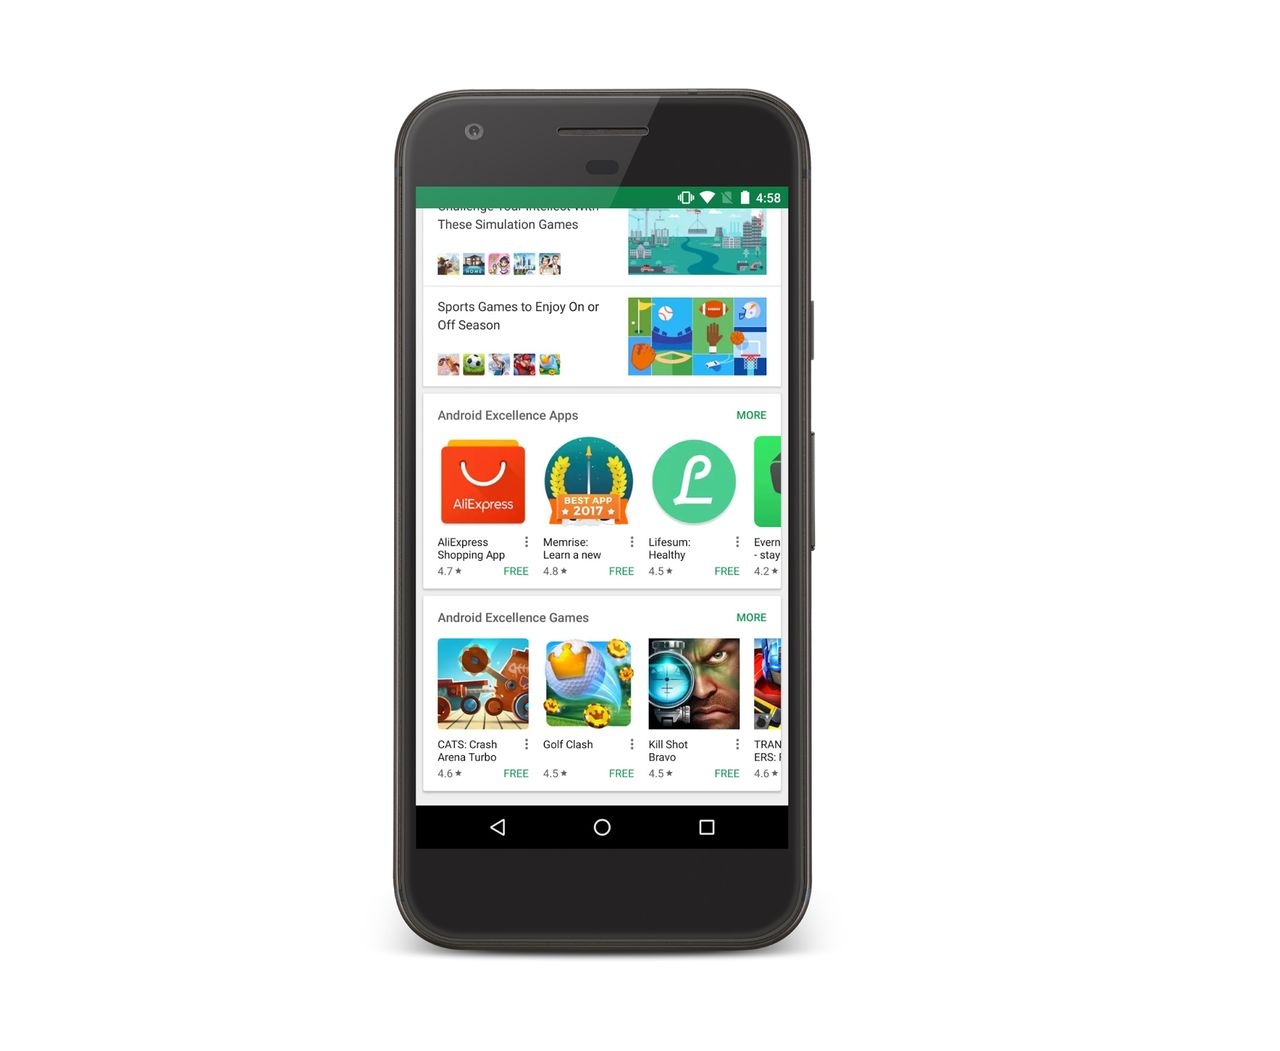 Google drar igång Android Excellence